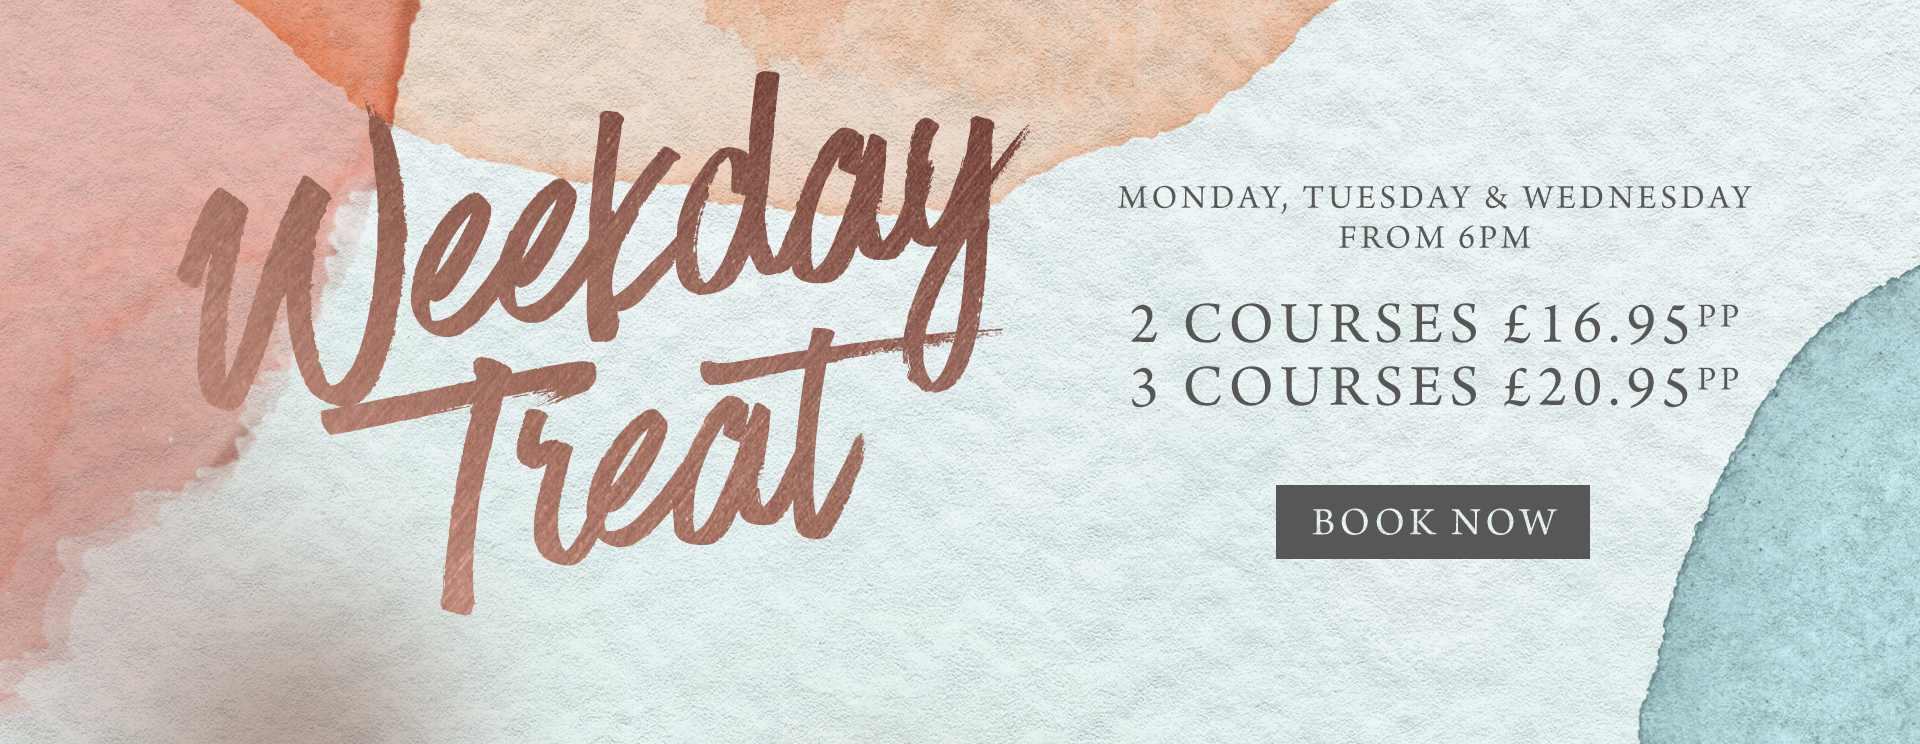 Weekday treat at The Corner House - Book now